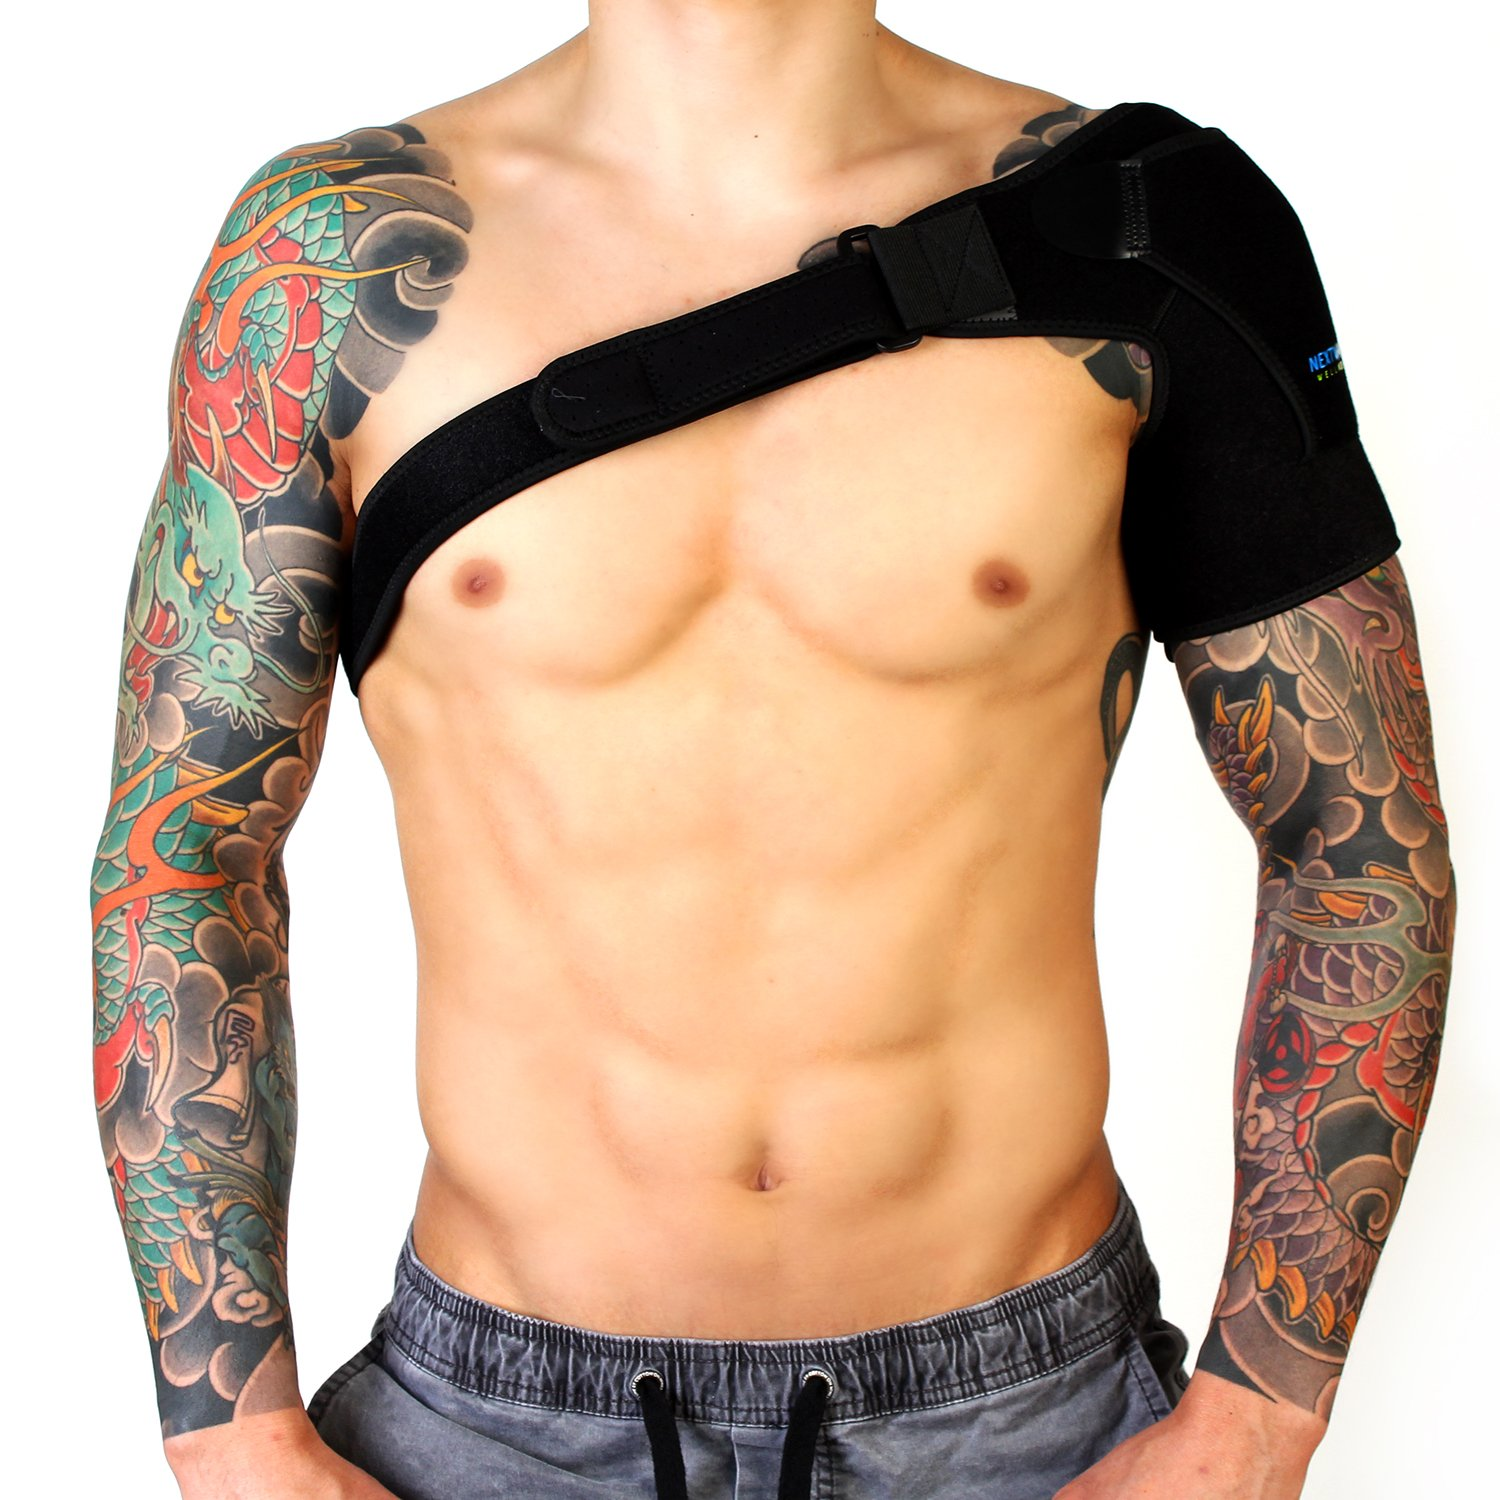 Shoulder Brace for Men & Women by NextWave Wellness | Compression Pad Sleeve for Right or Left Upper Arm & Shoulder Support | Neoprene Sling Wrap for Rotator Injuries & Joint Pain | Adjustable Straps by Nextwave Wellness